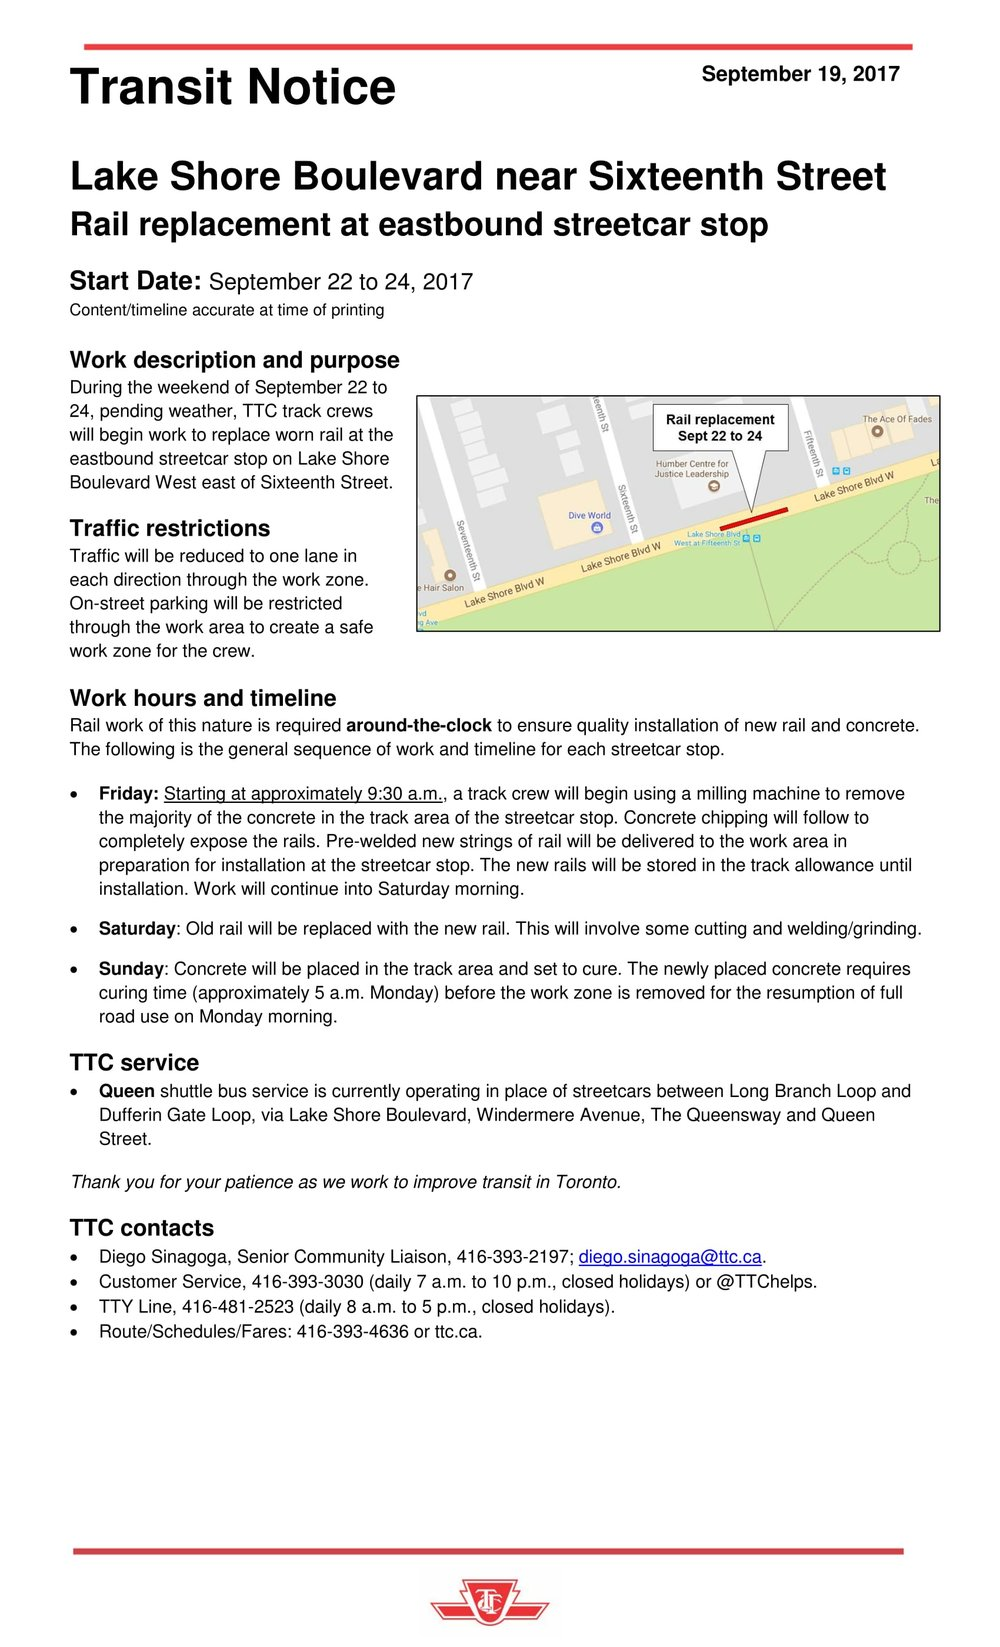 Priority track repairs - car stop - LSW and 16th - Sept 2017-1.jpg